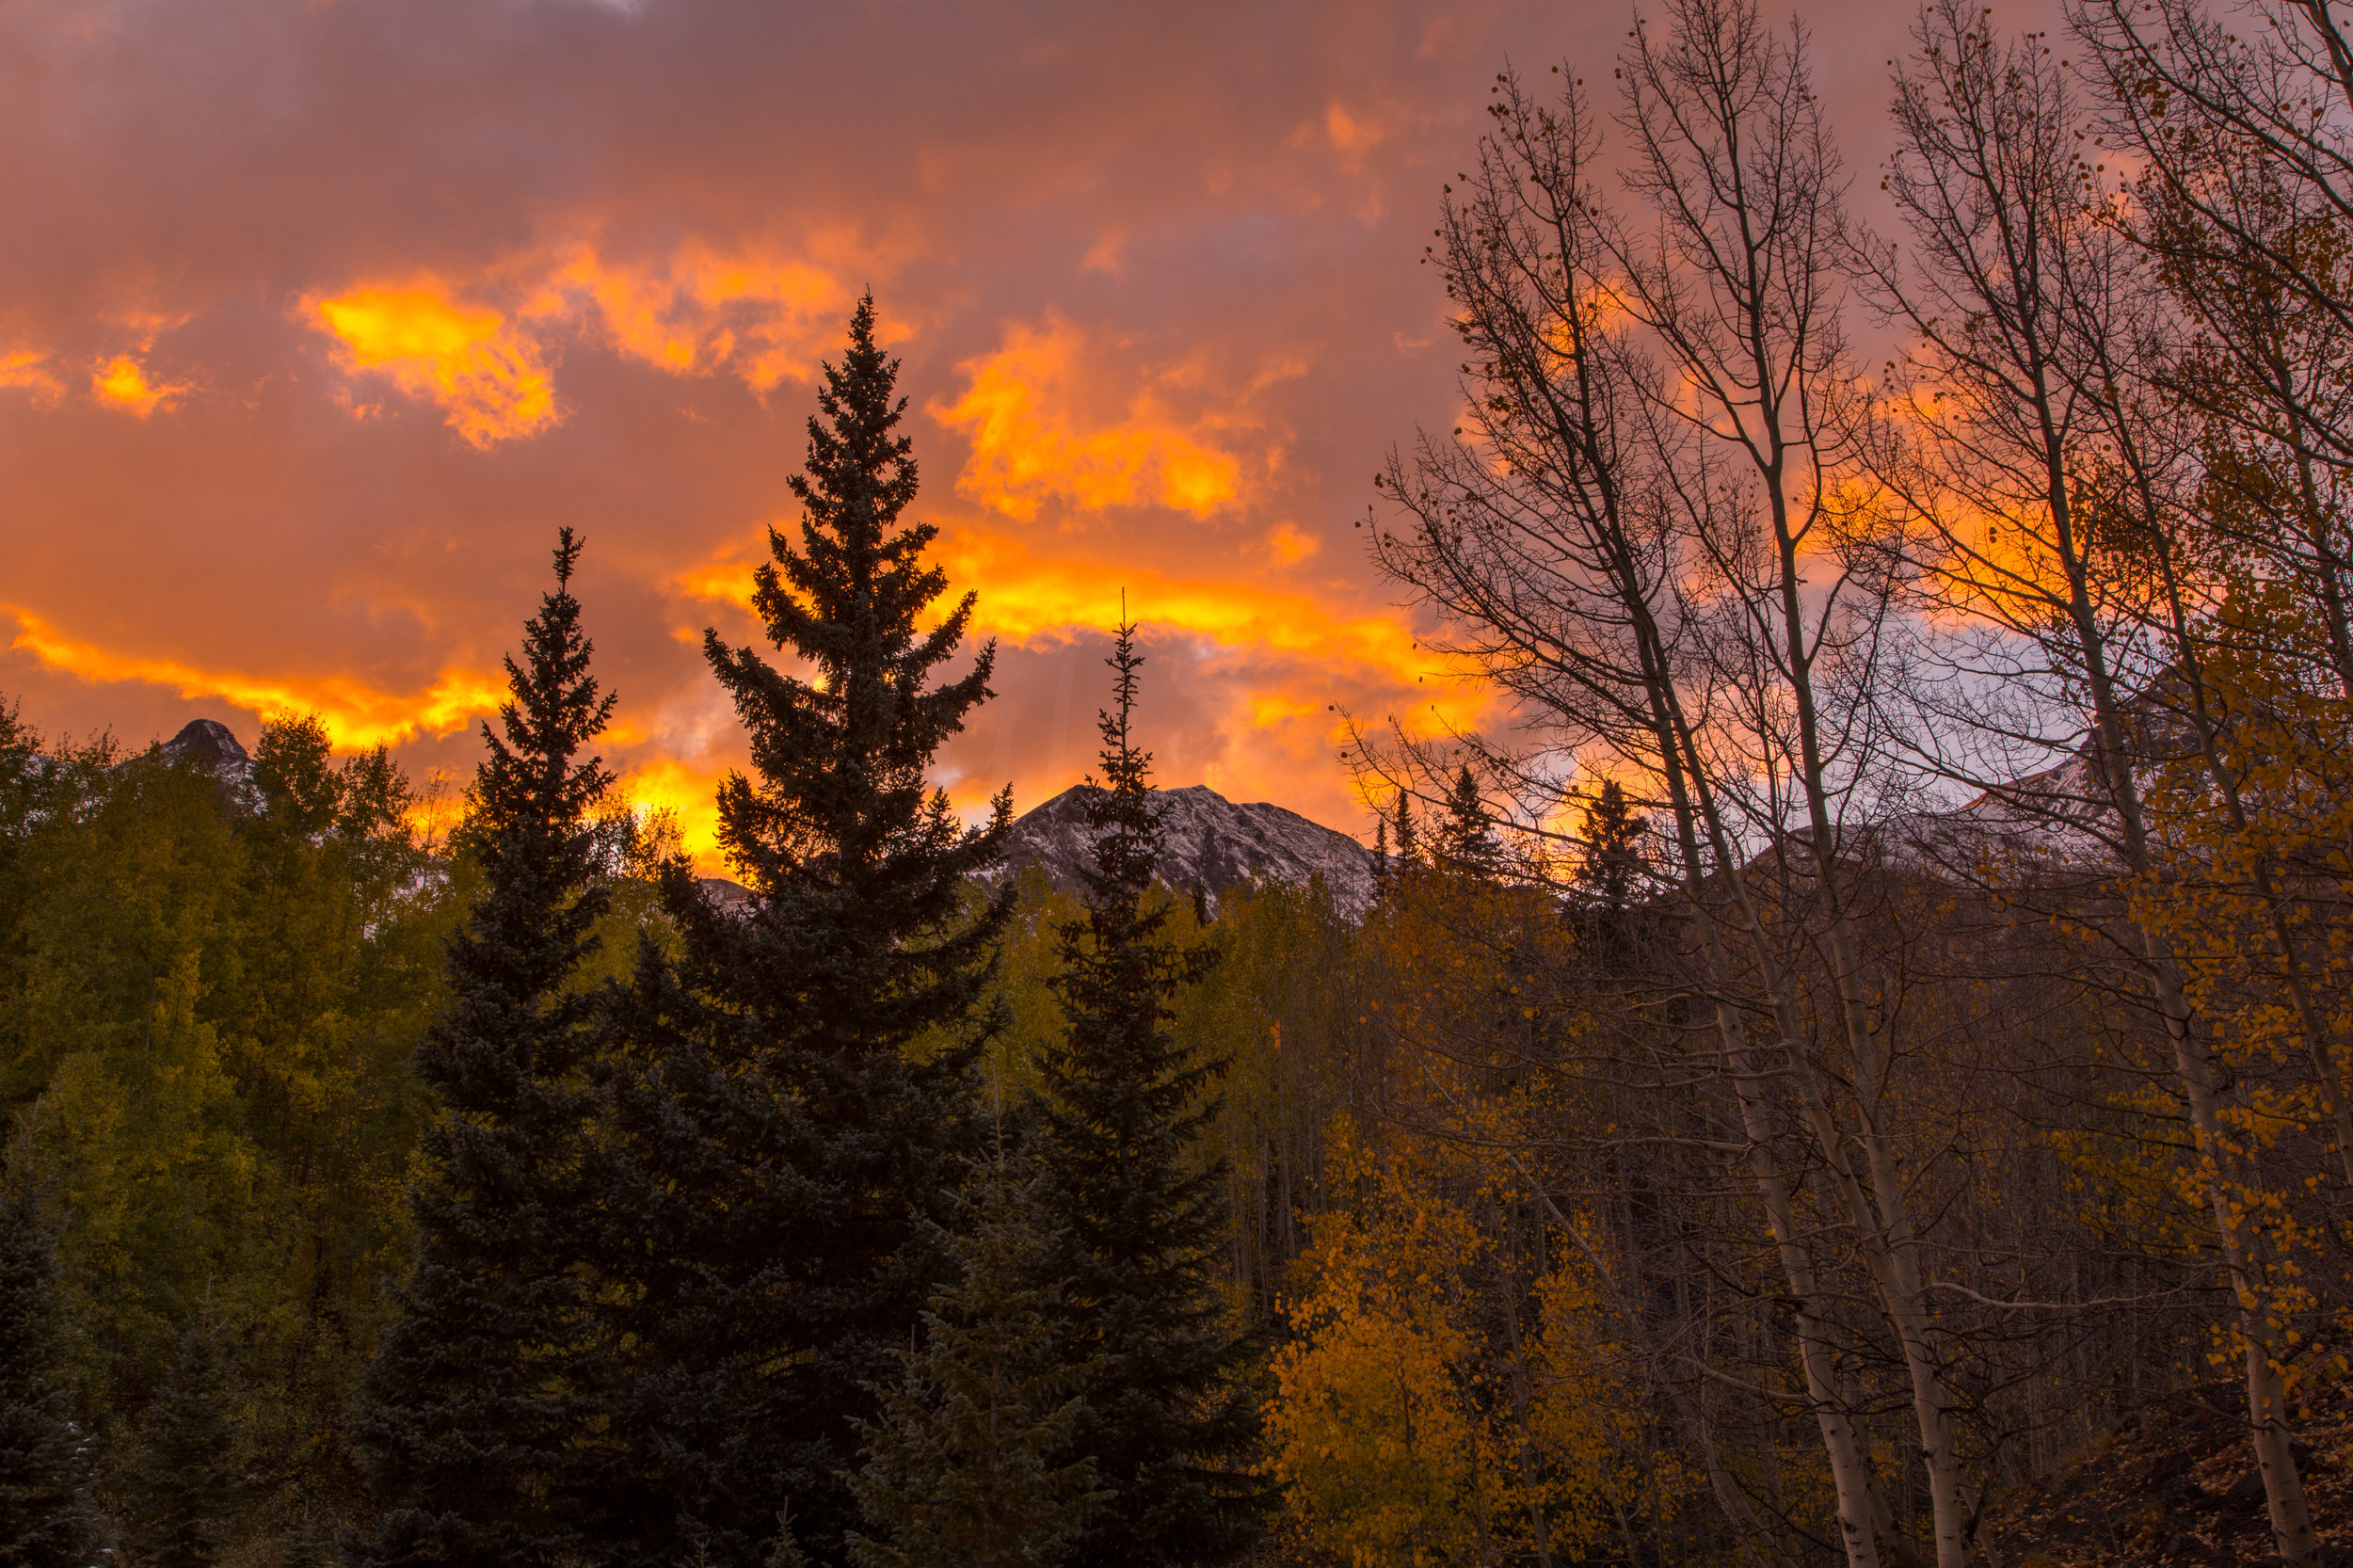 Red Mountain Sunset, Image # 5343